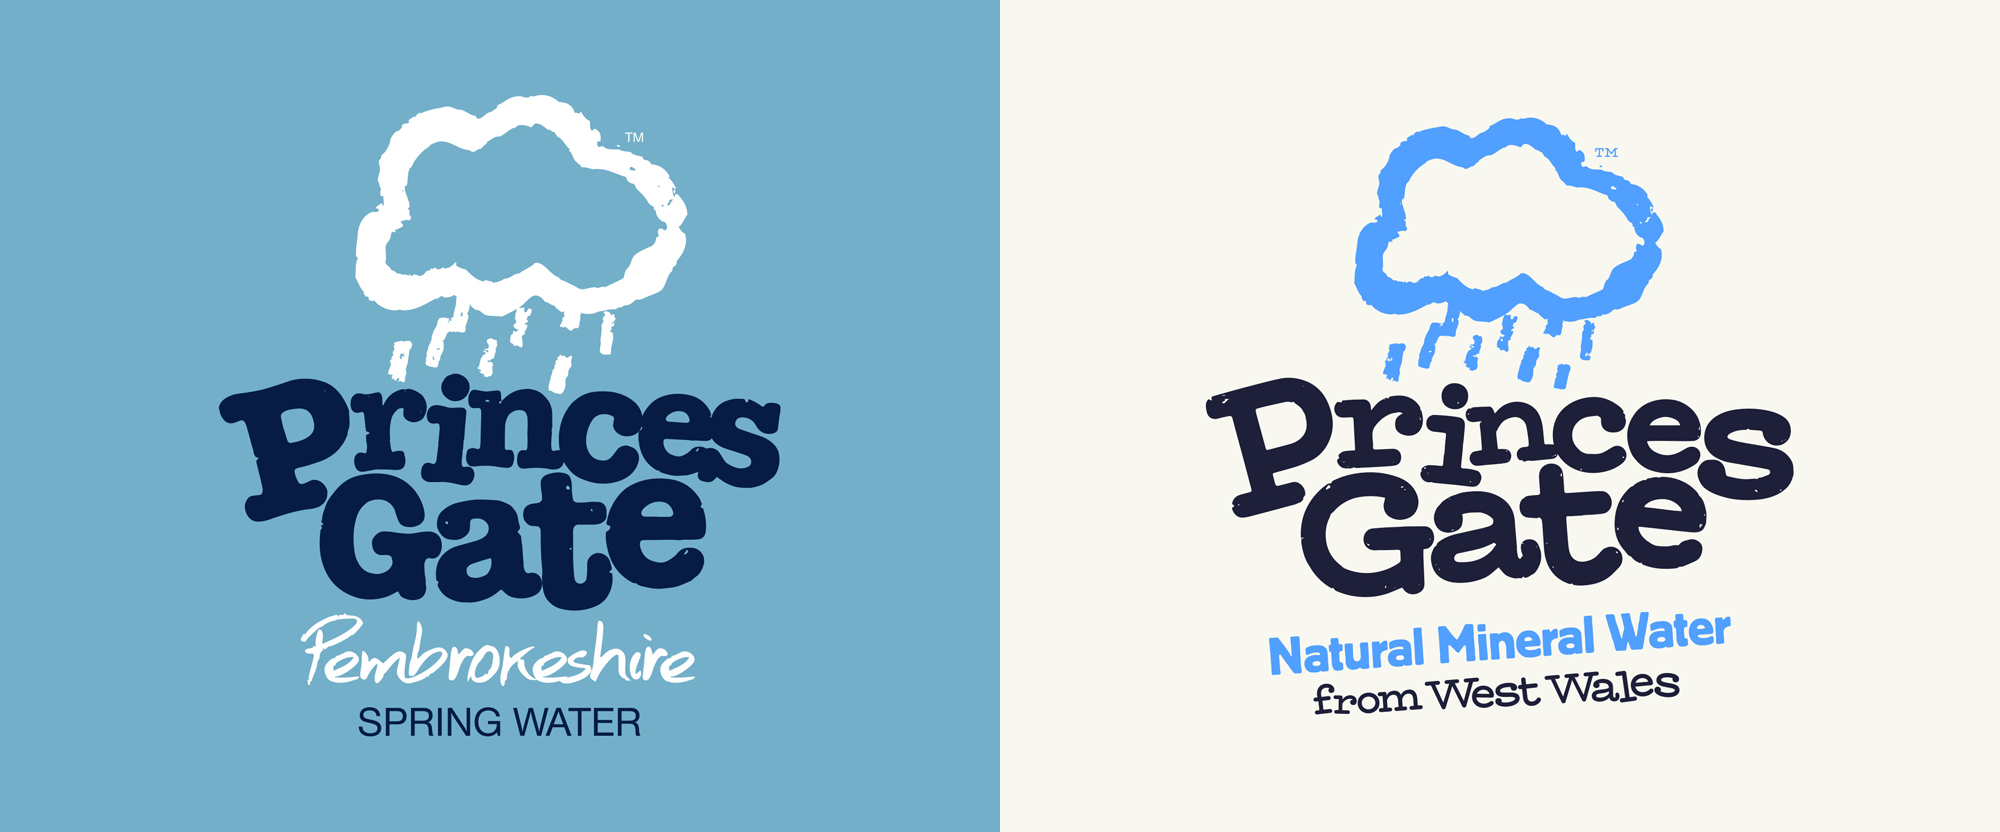 New Logo and Identity for Princes Gate Water by John & Jane